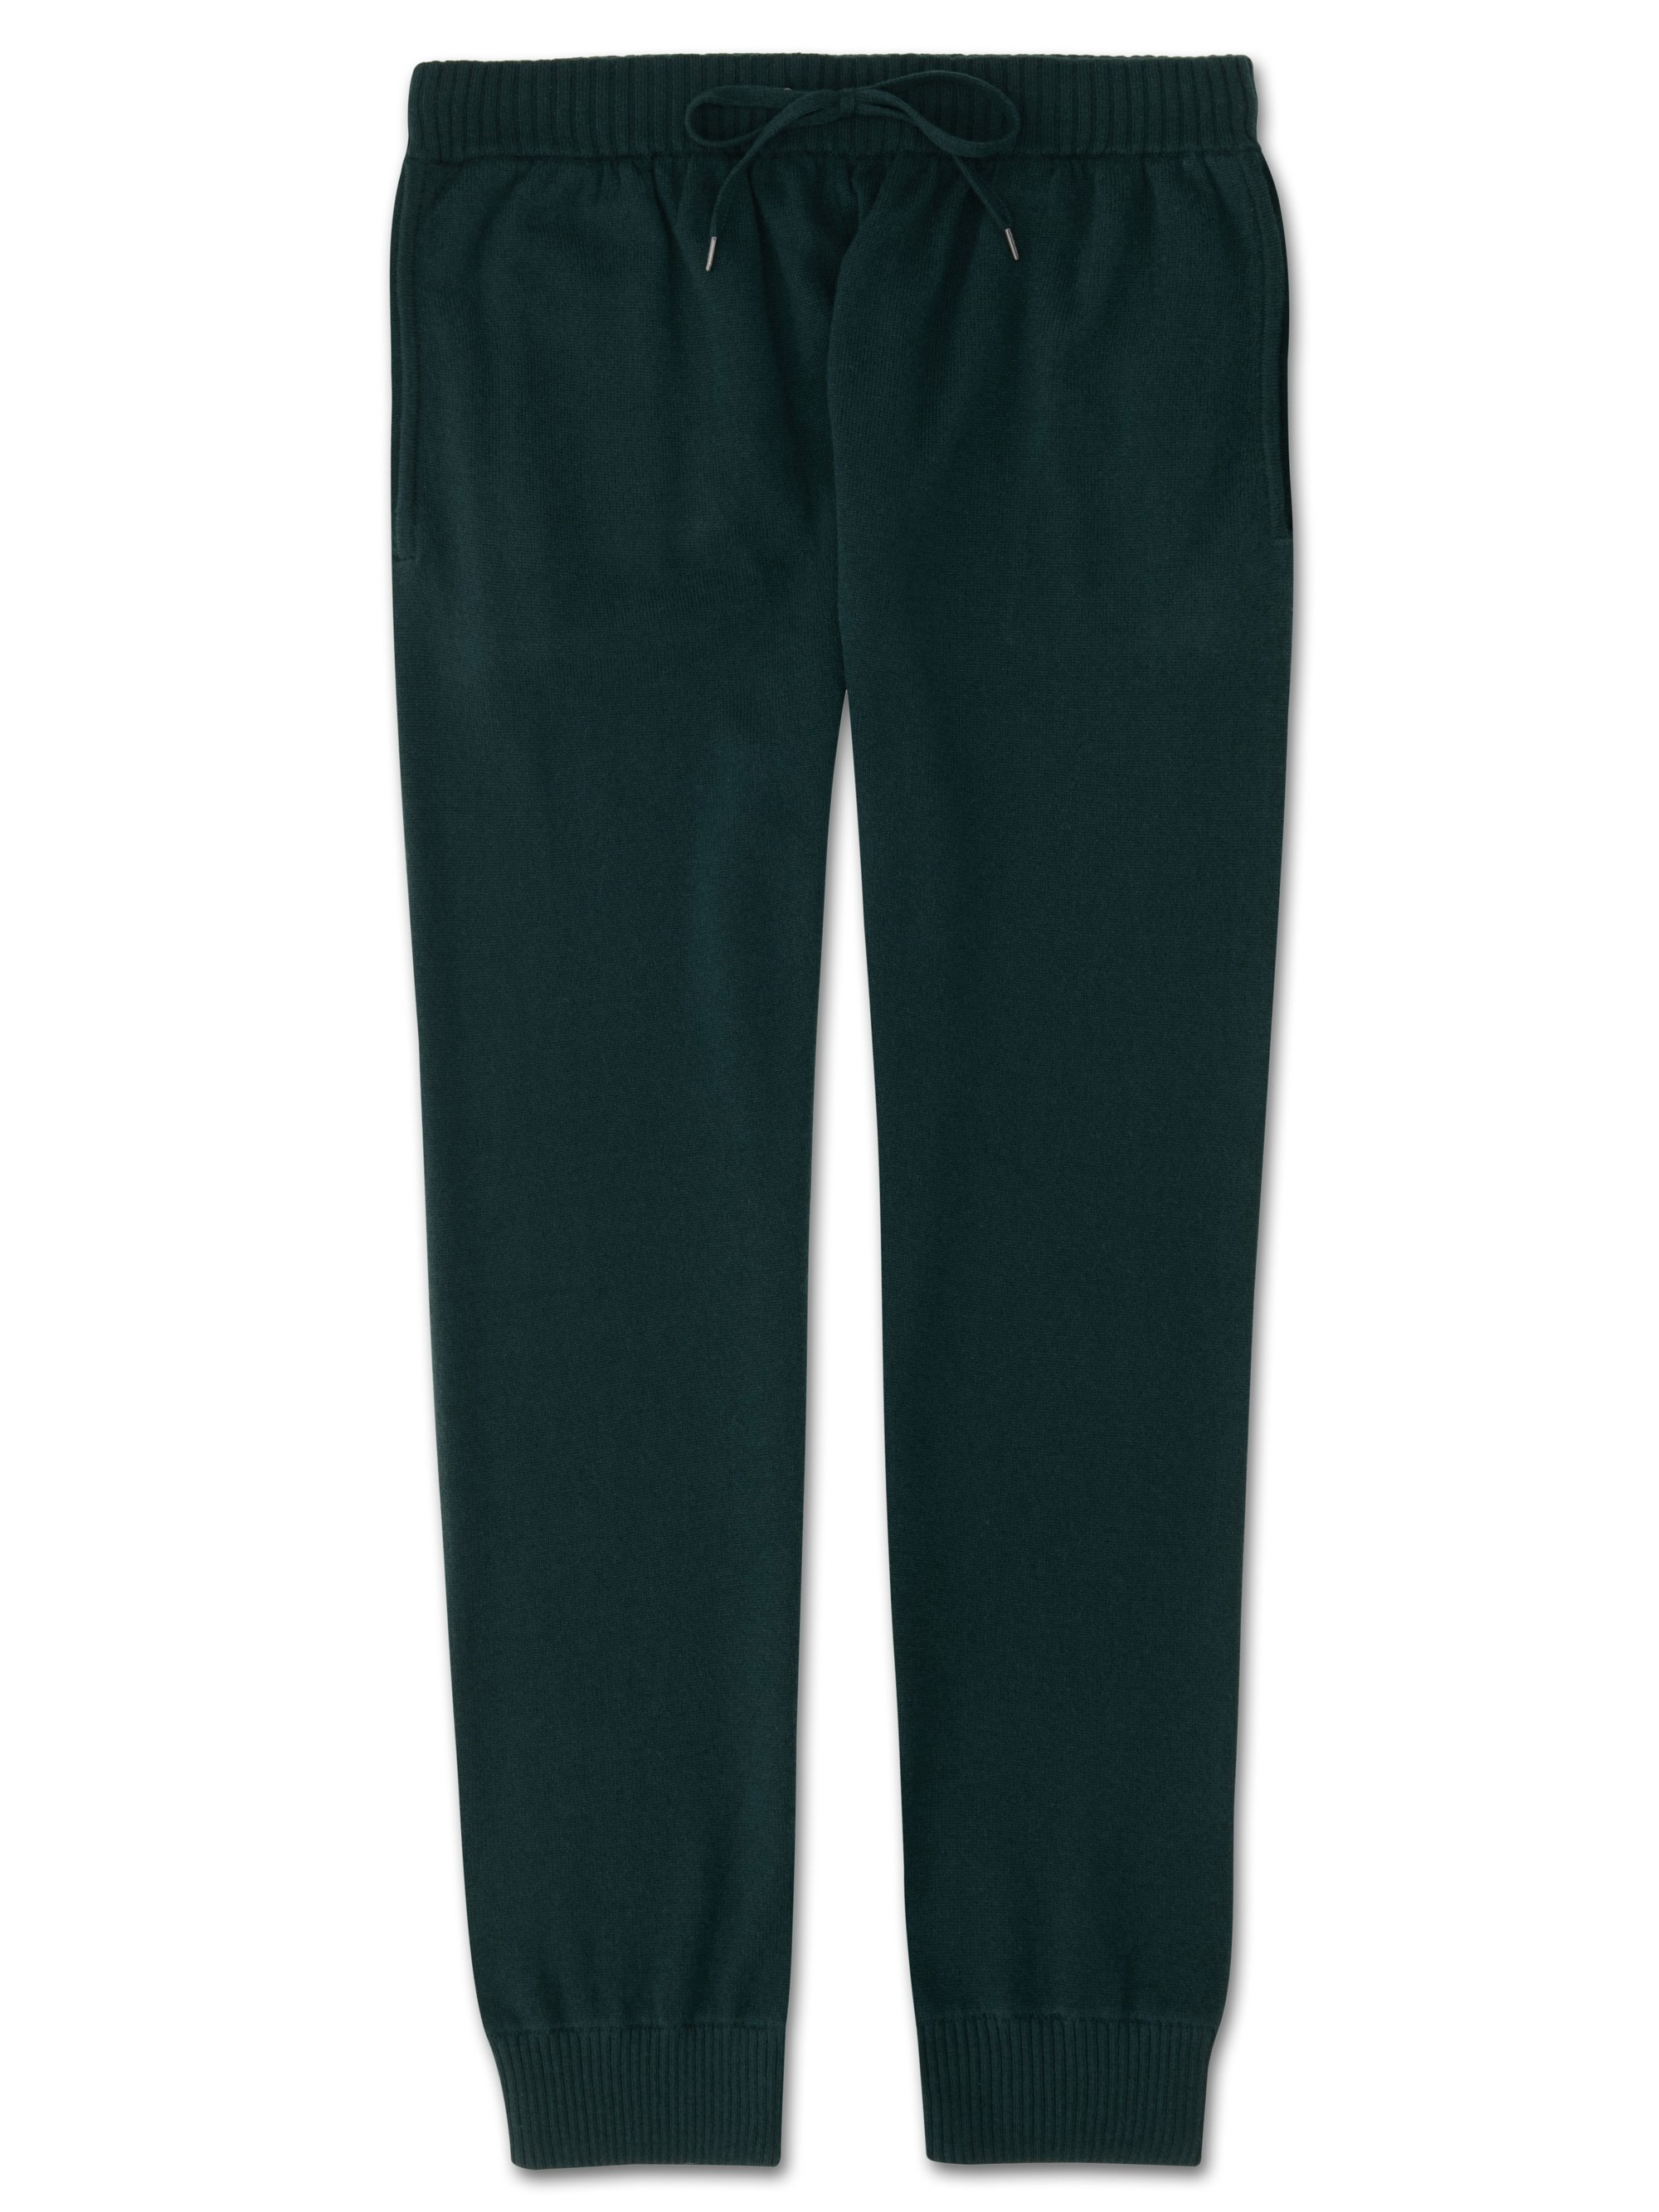 Men's Cashmere Track Pants Finley Pure Cashmere Green